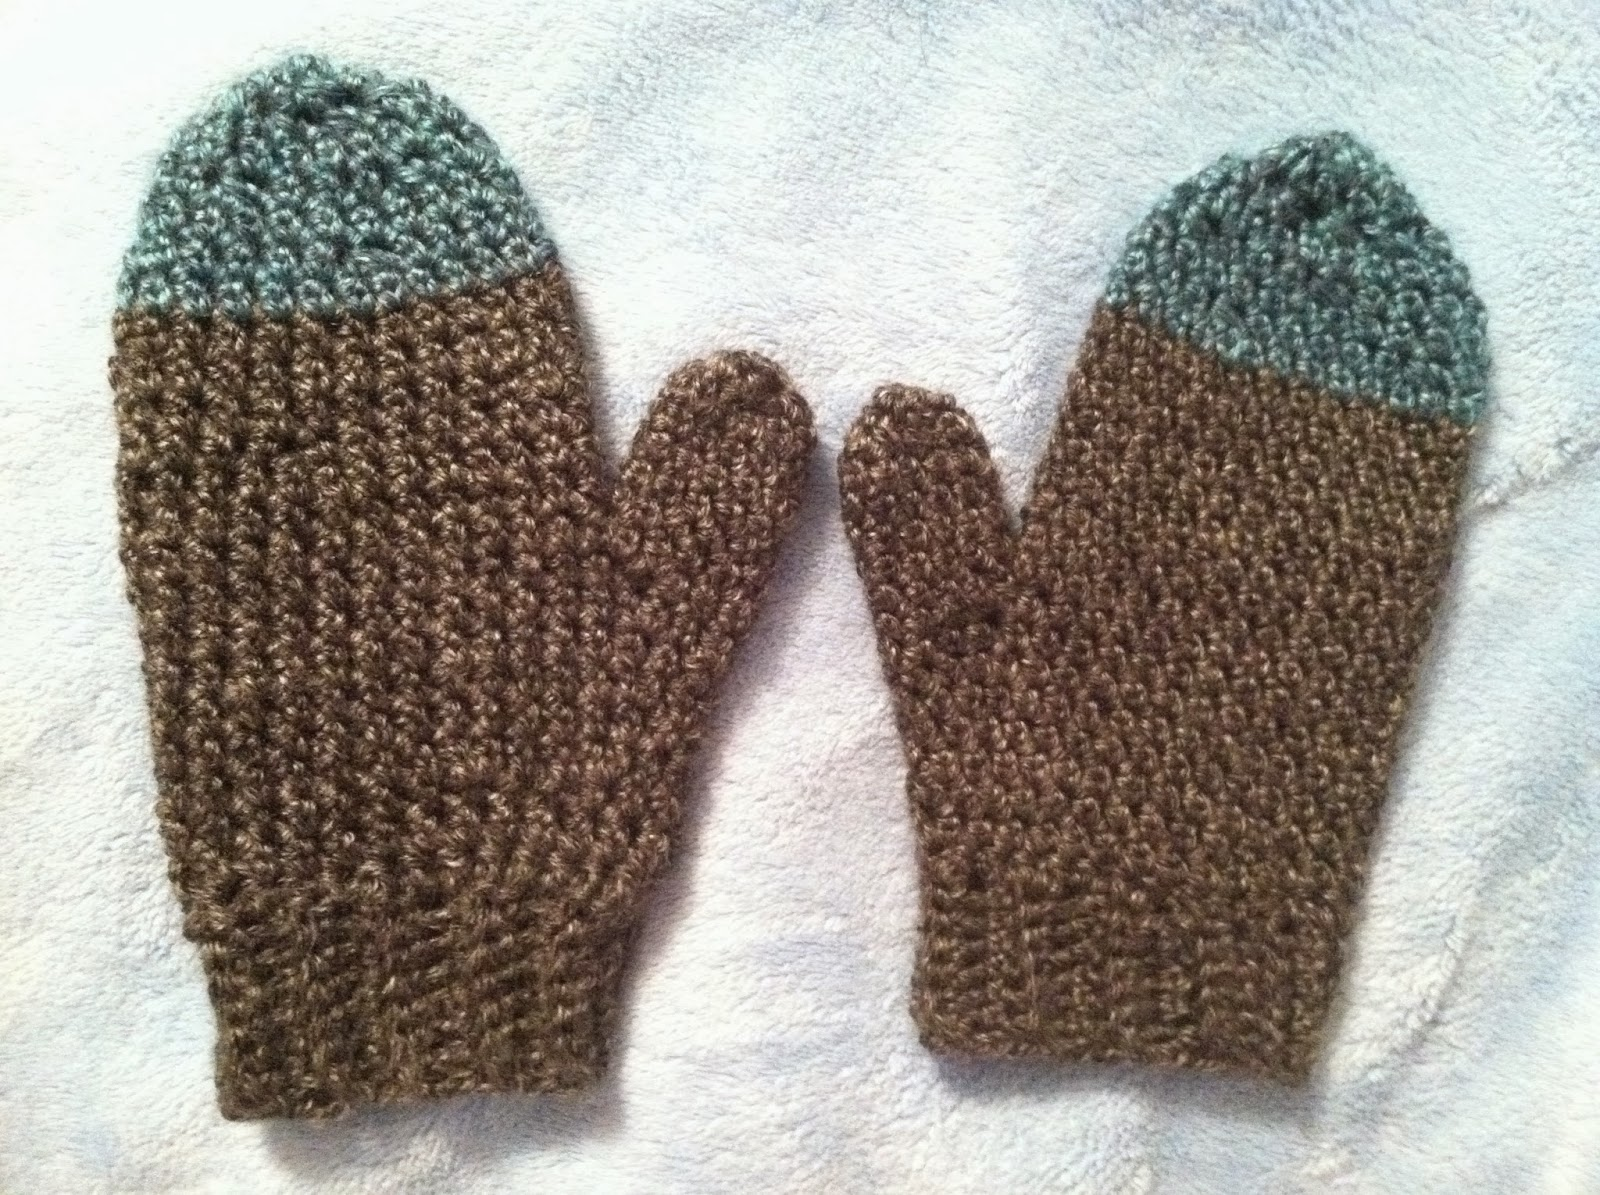 Crochet Patterns Mittens : feel like i ve now accomplished more as a crocheter by branching out ...